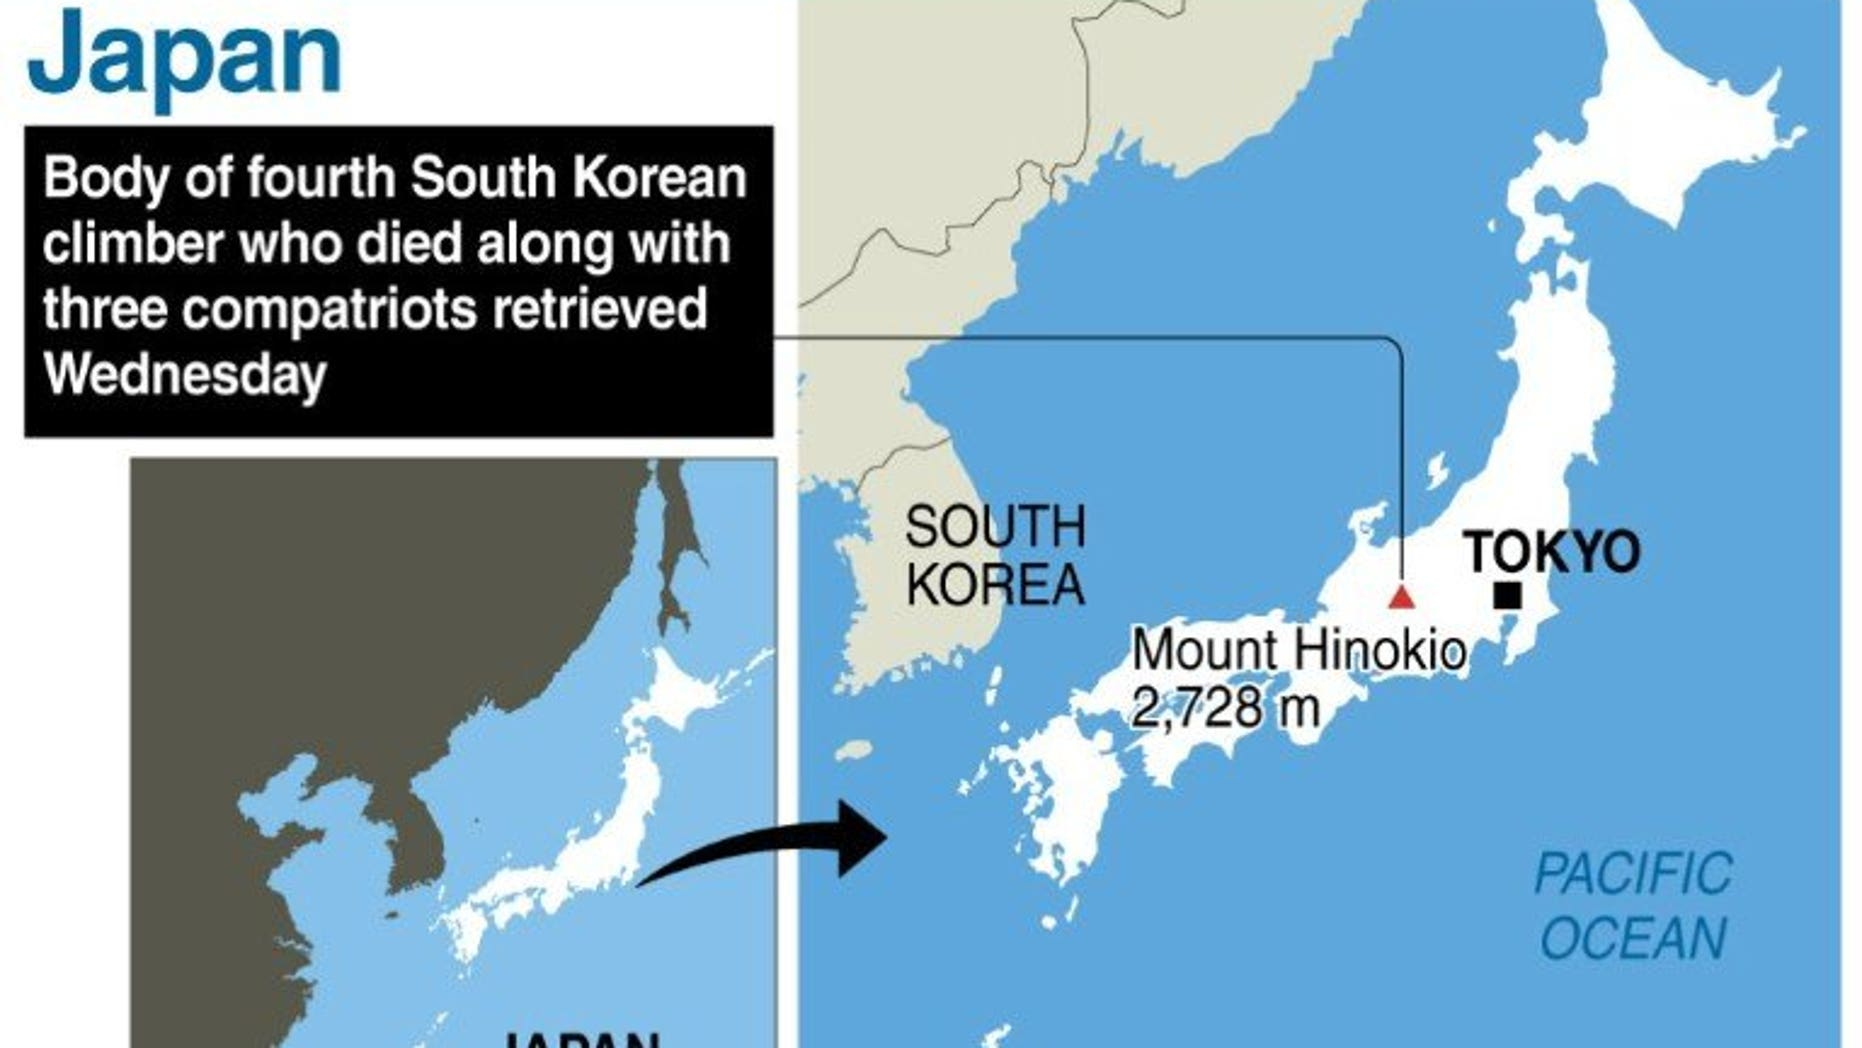 Graphic showing Japan's Mount Hinokio, where the body of a fourth South Korean climber who died along with three compatriots has been retrieved, Japanese police said Wednesday.